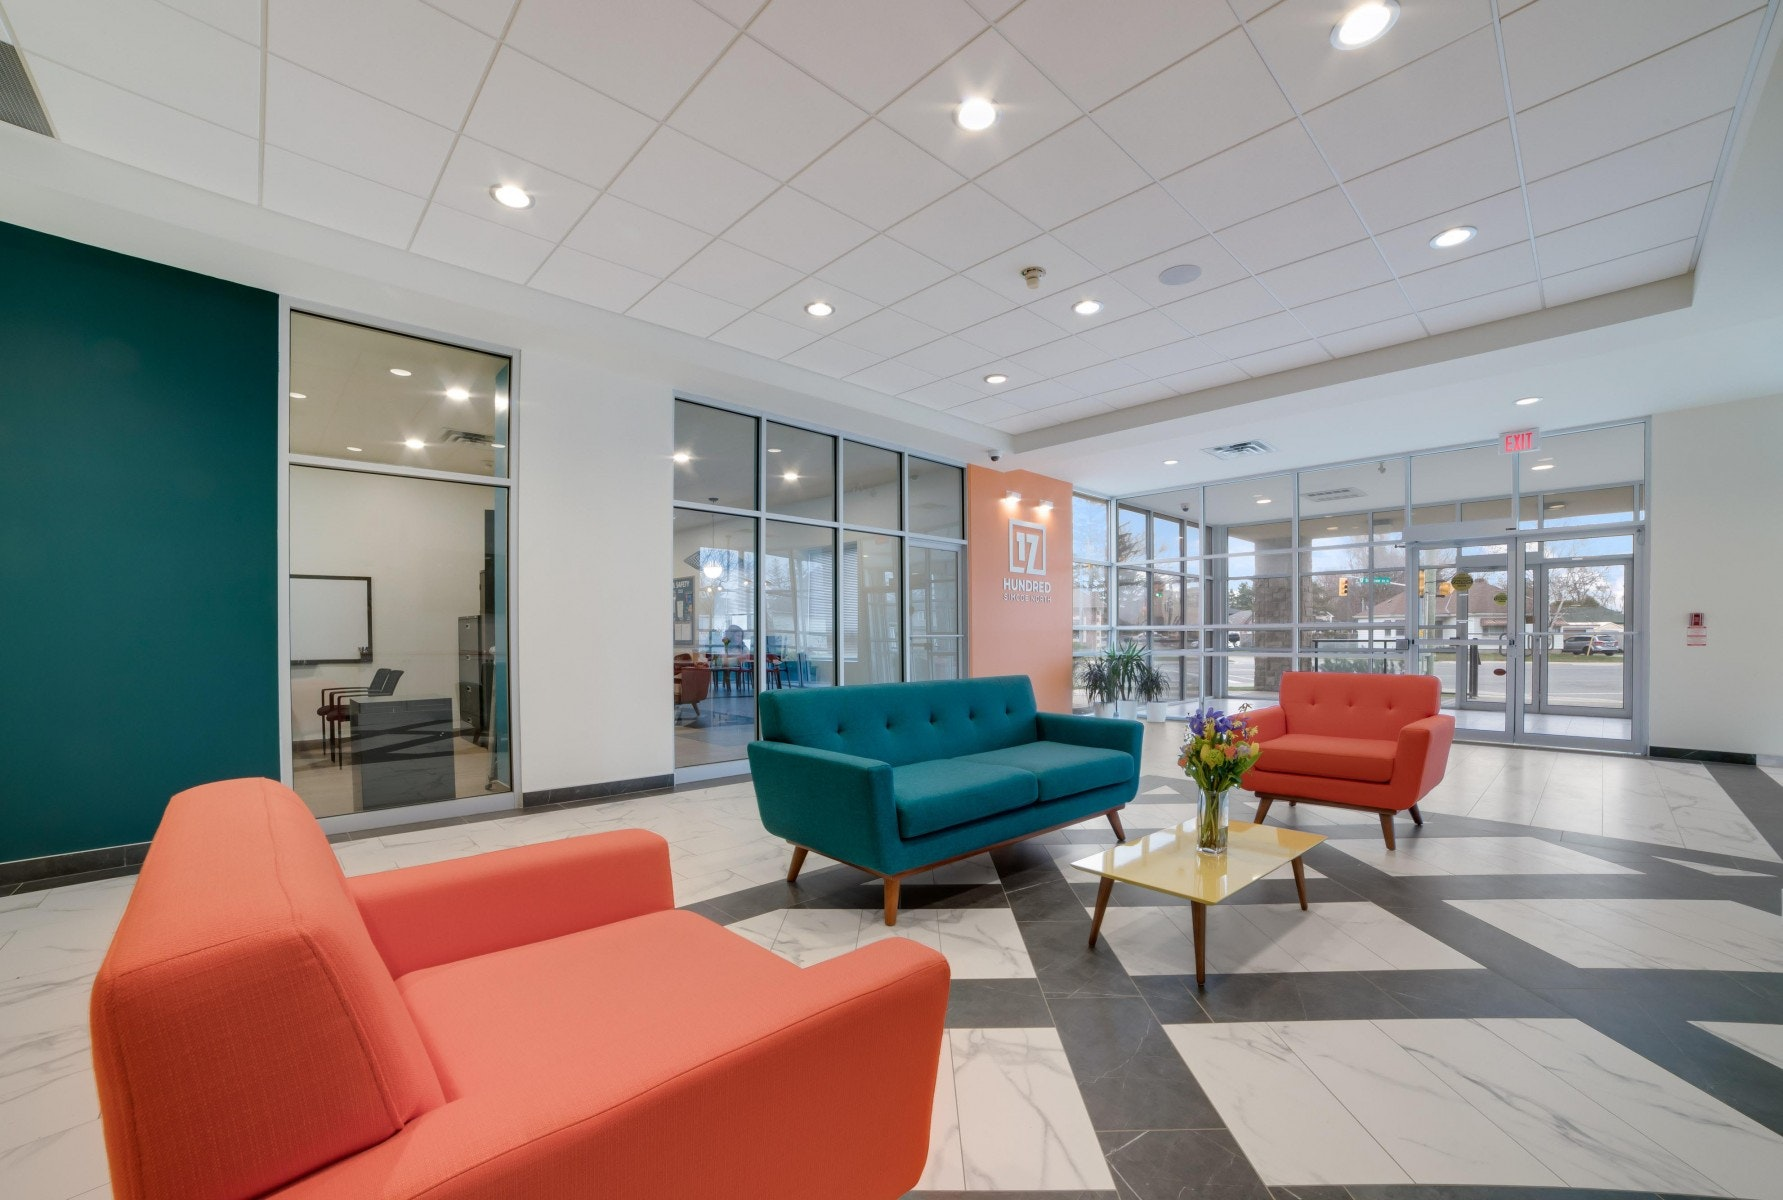 Lobby with couches